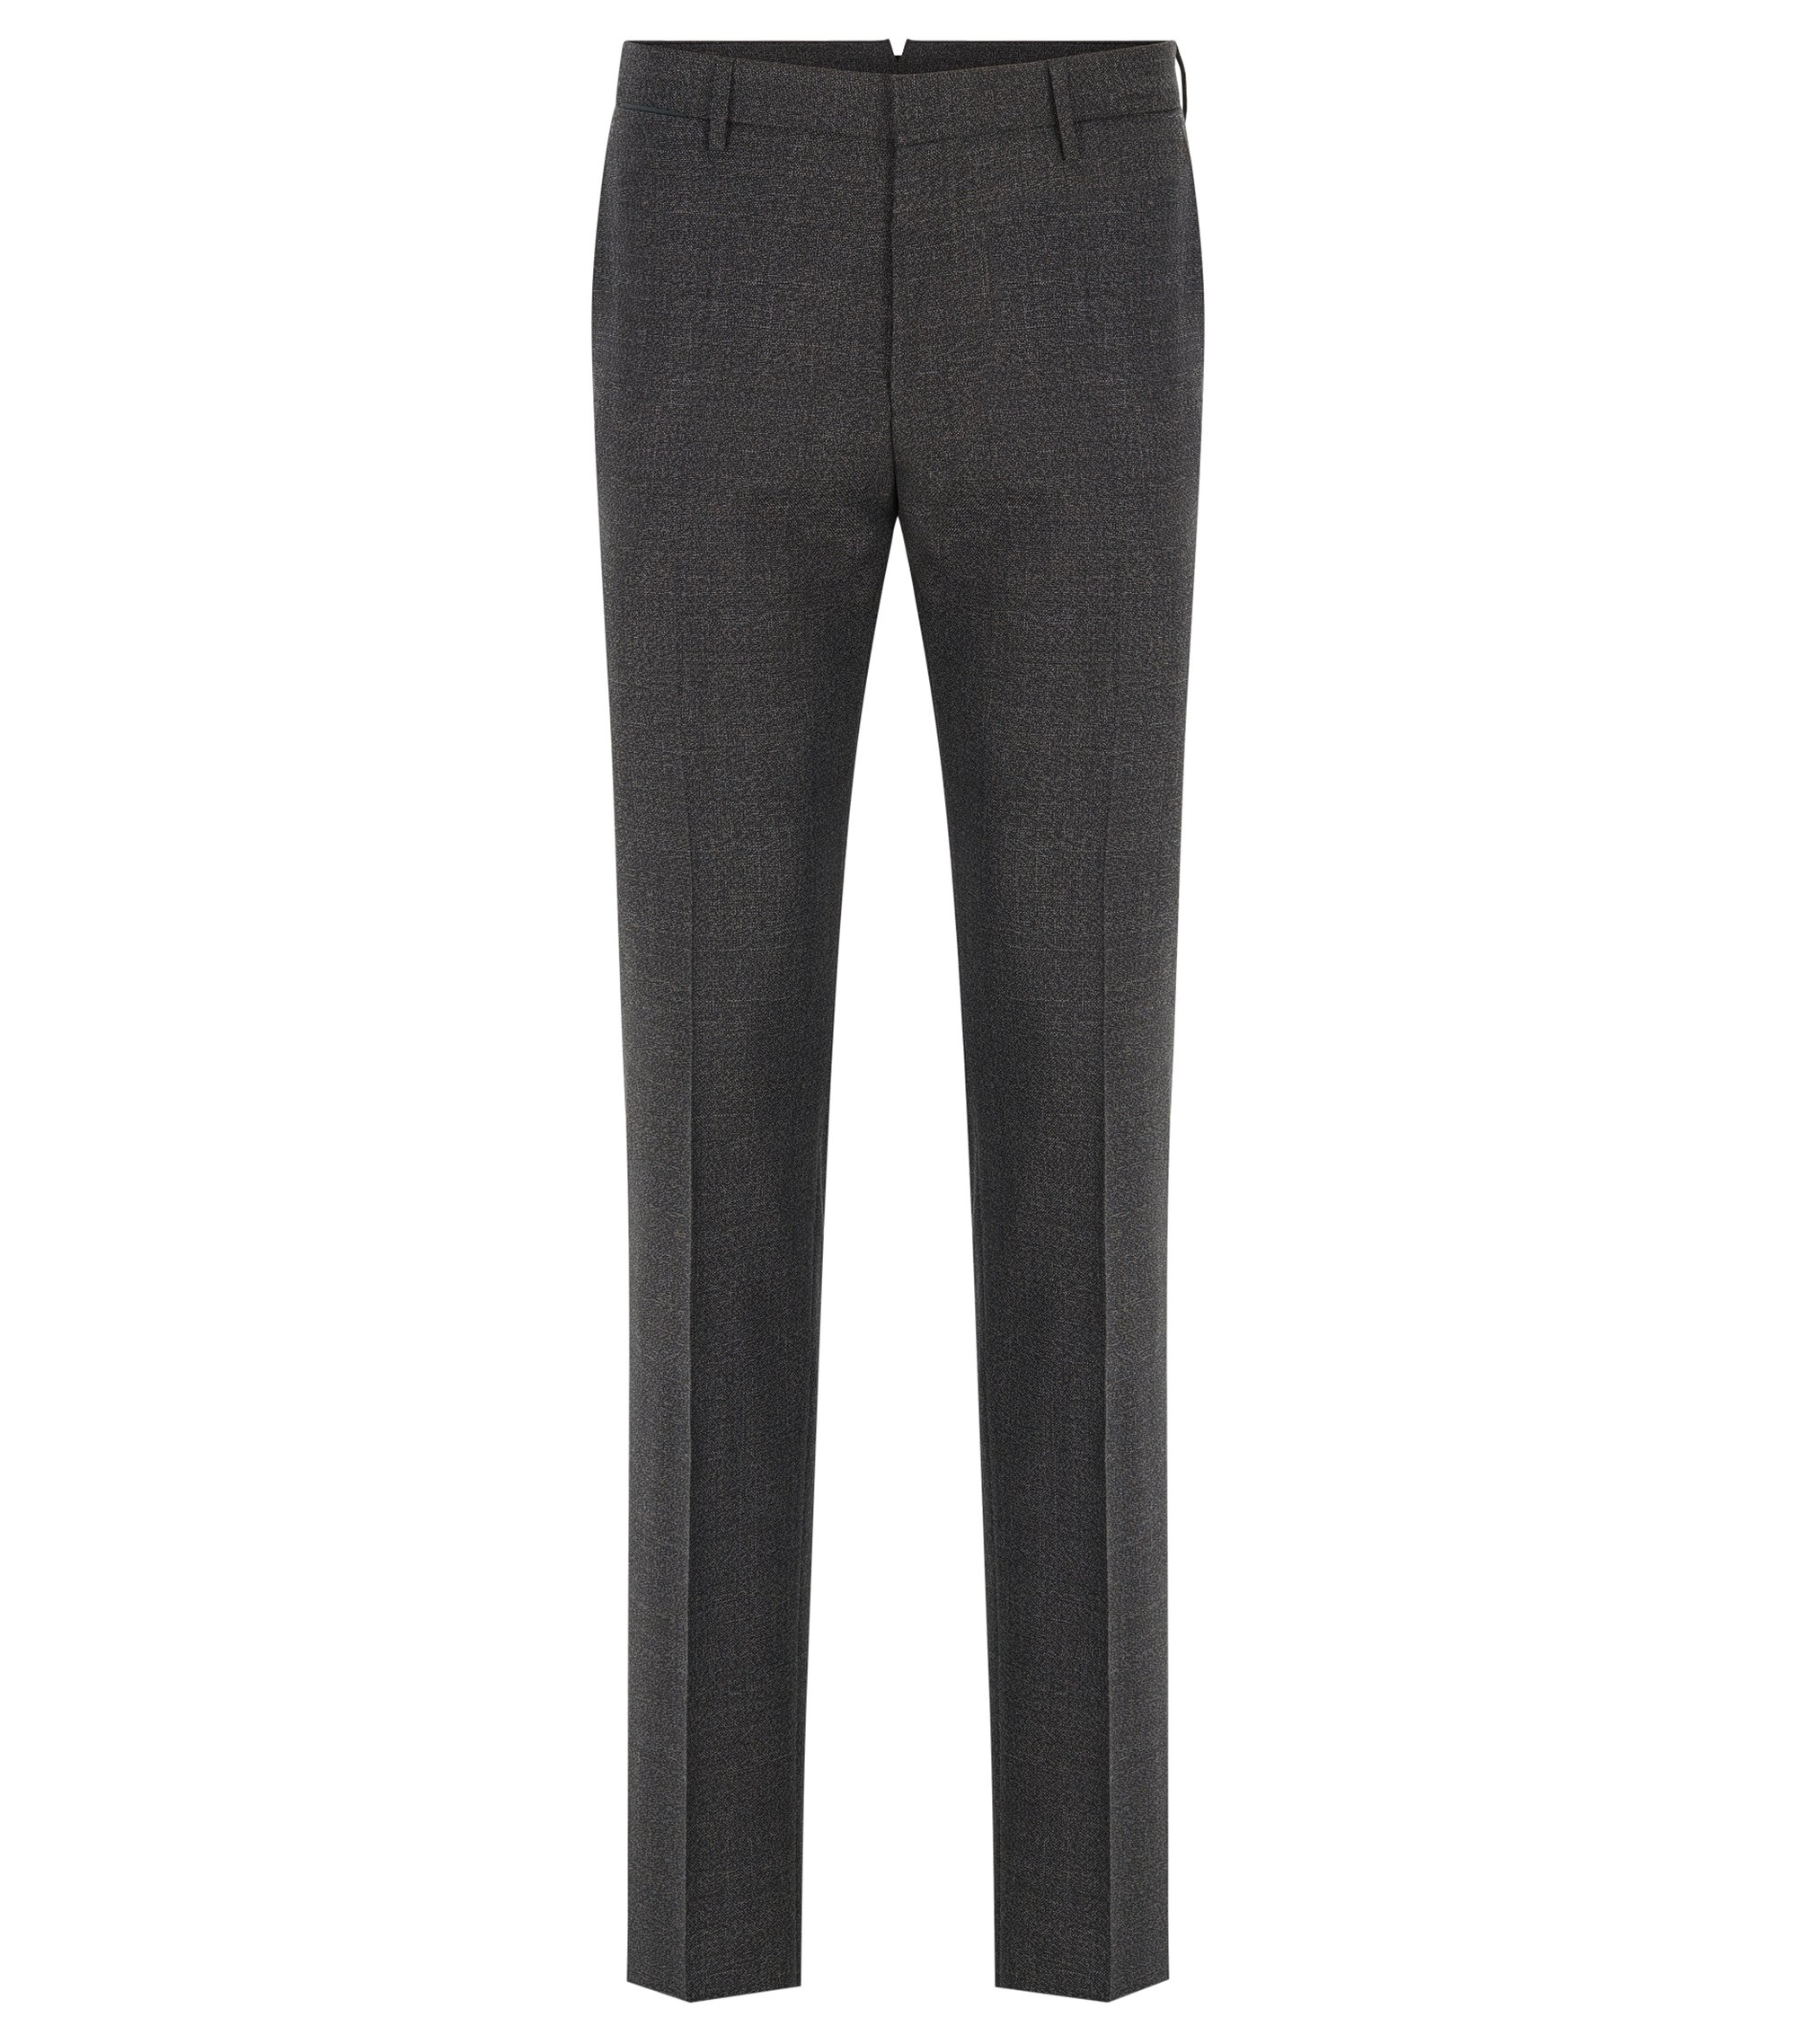 Virgin Wool Dress Pant, Slim Fit | T-Bloom, Open Grey